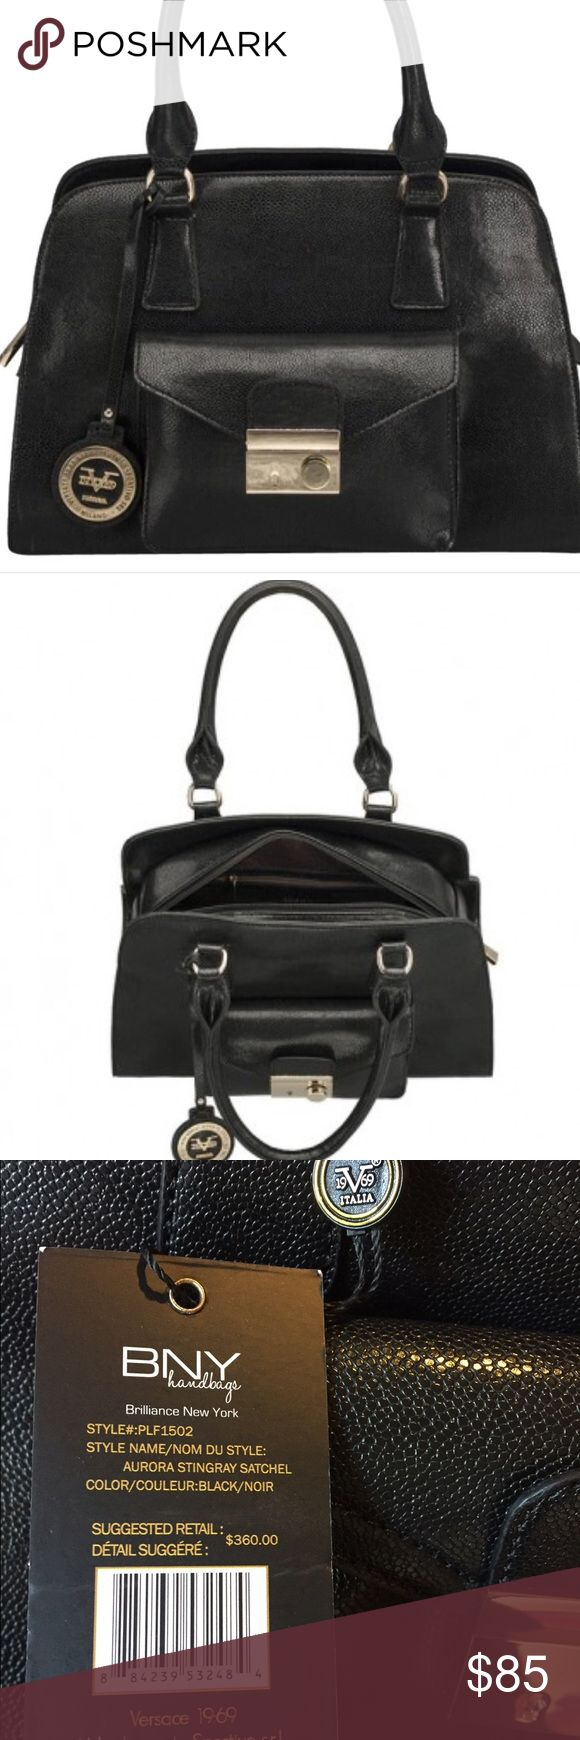 "Versace 19.69 abbigliamento sportivo black satchel Brand new with original retail tags of $360!  About 16""X11.5""x6.5"". This won't last long!!  Look at bundling to save even more money!! Versace Bags Satchels"